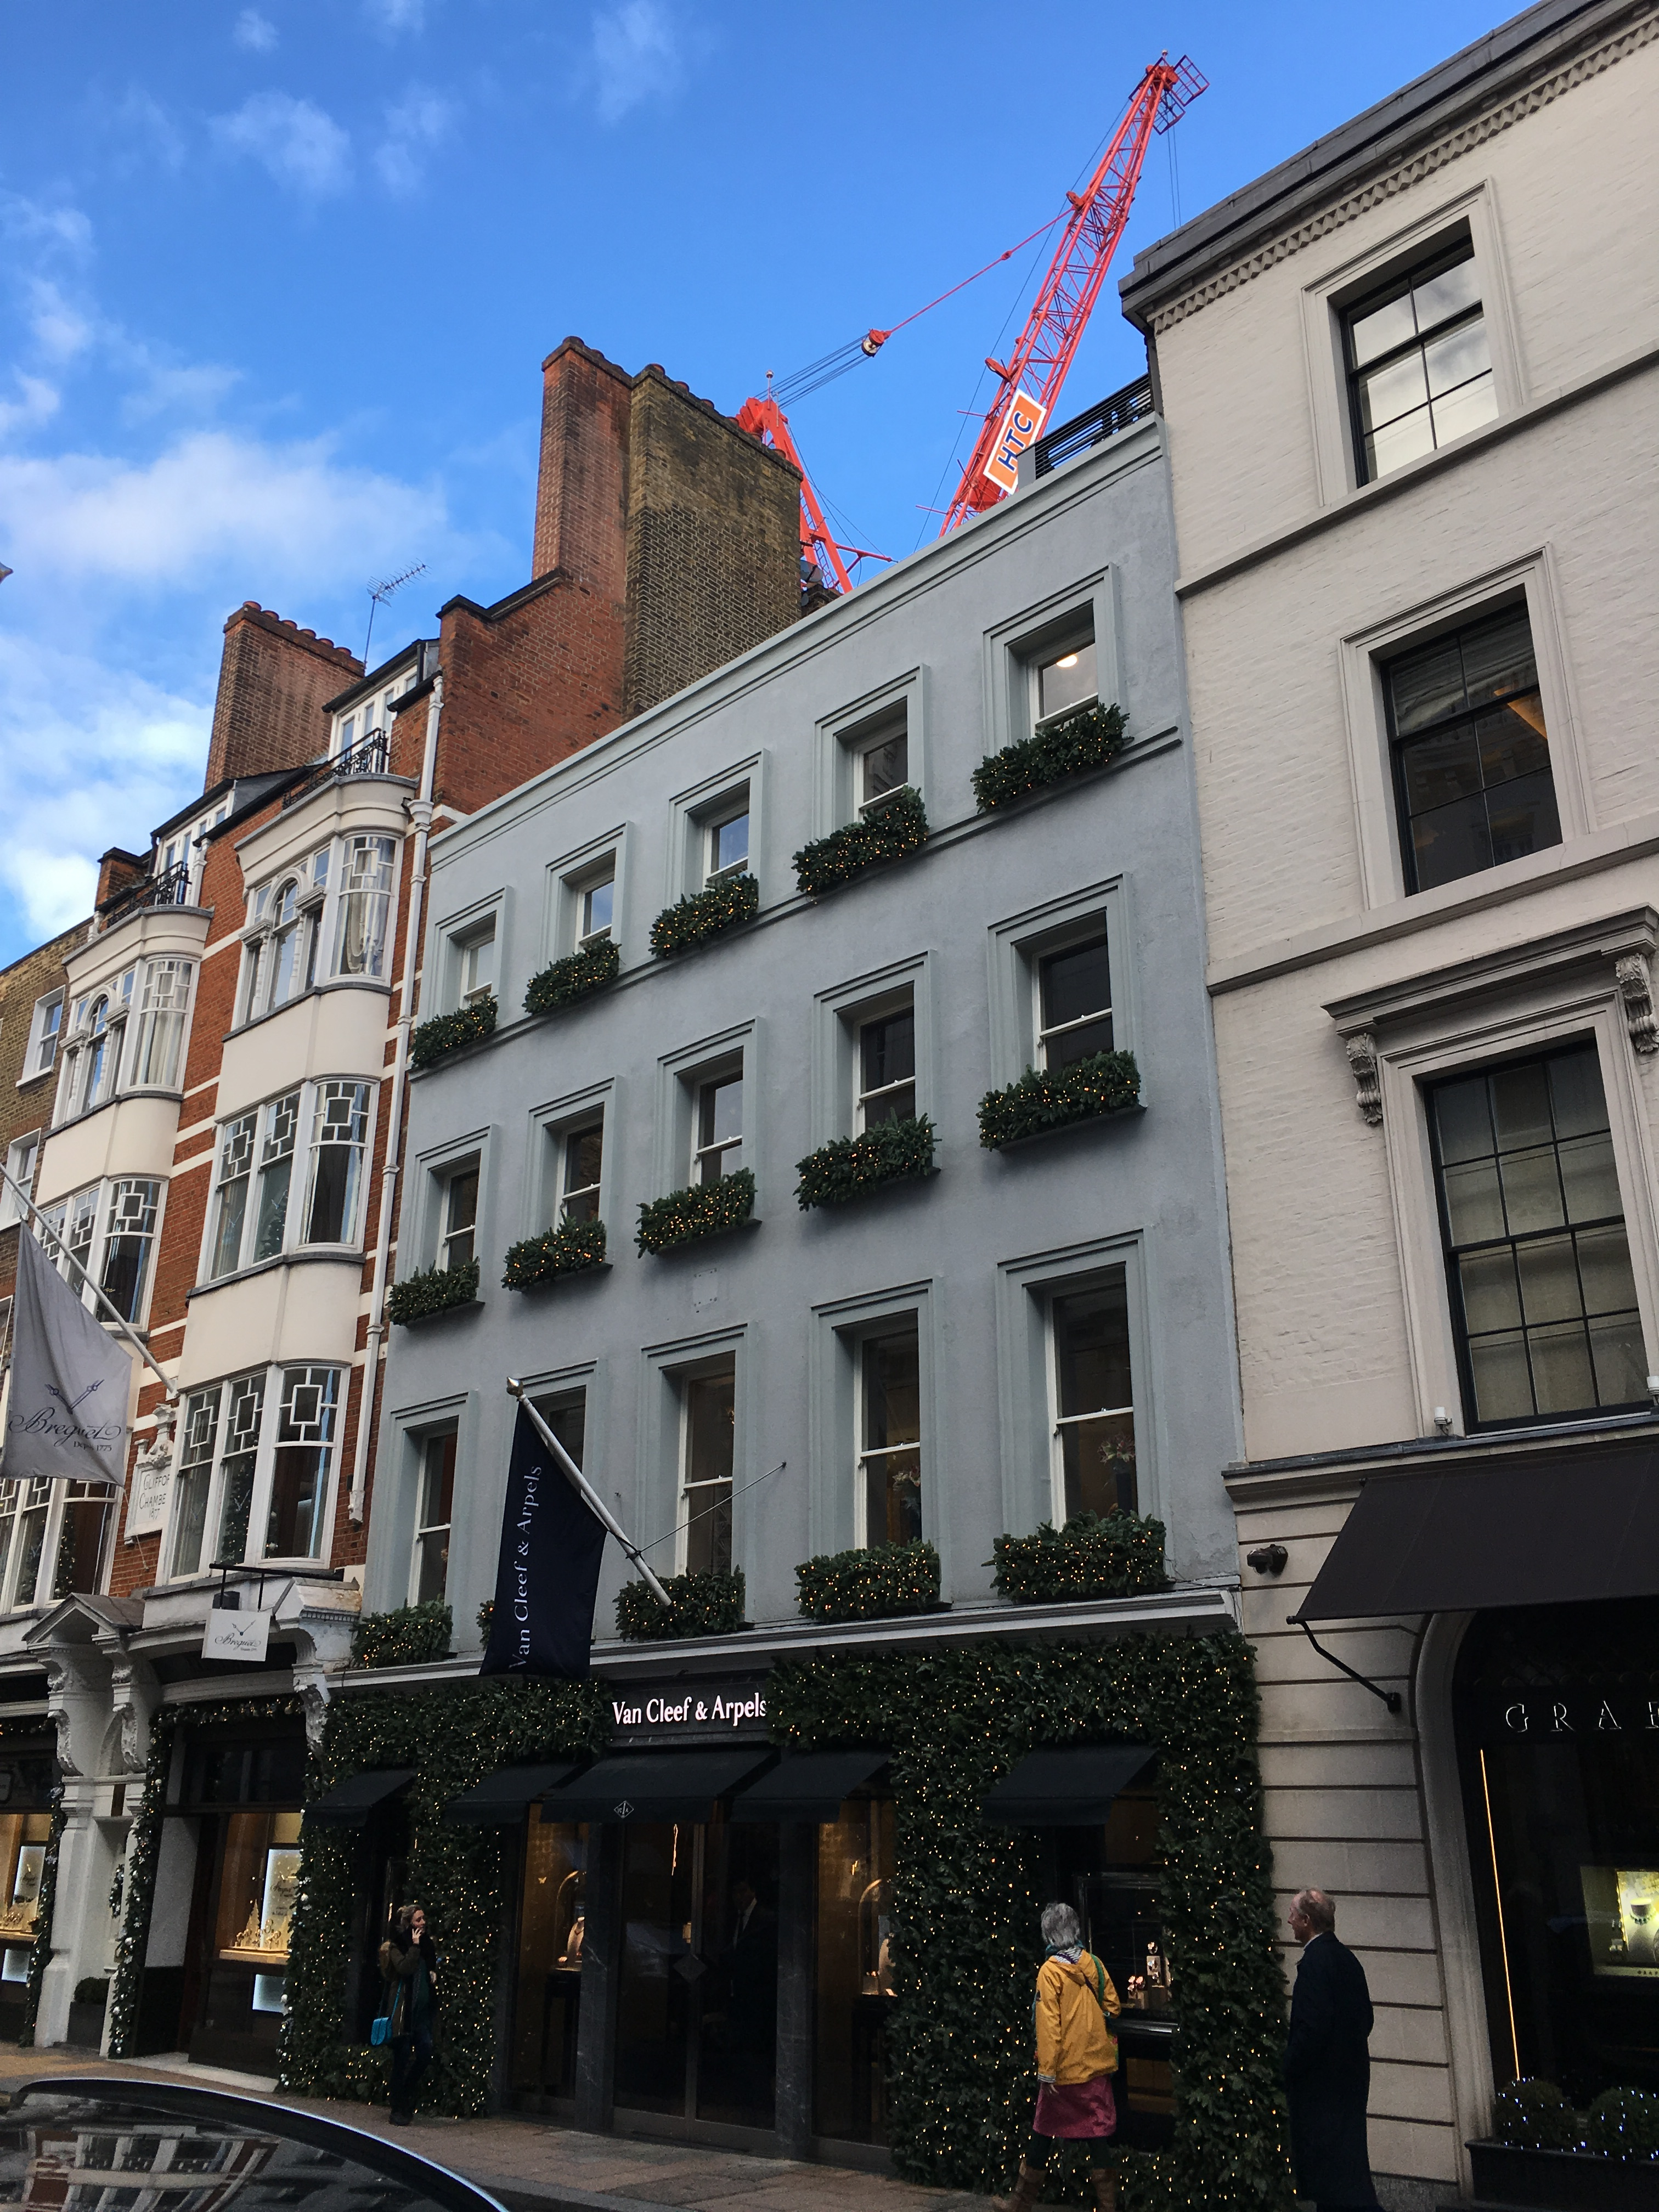 Main photo of 9 New Bond Street – VanCleef & Arpels